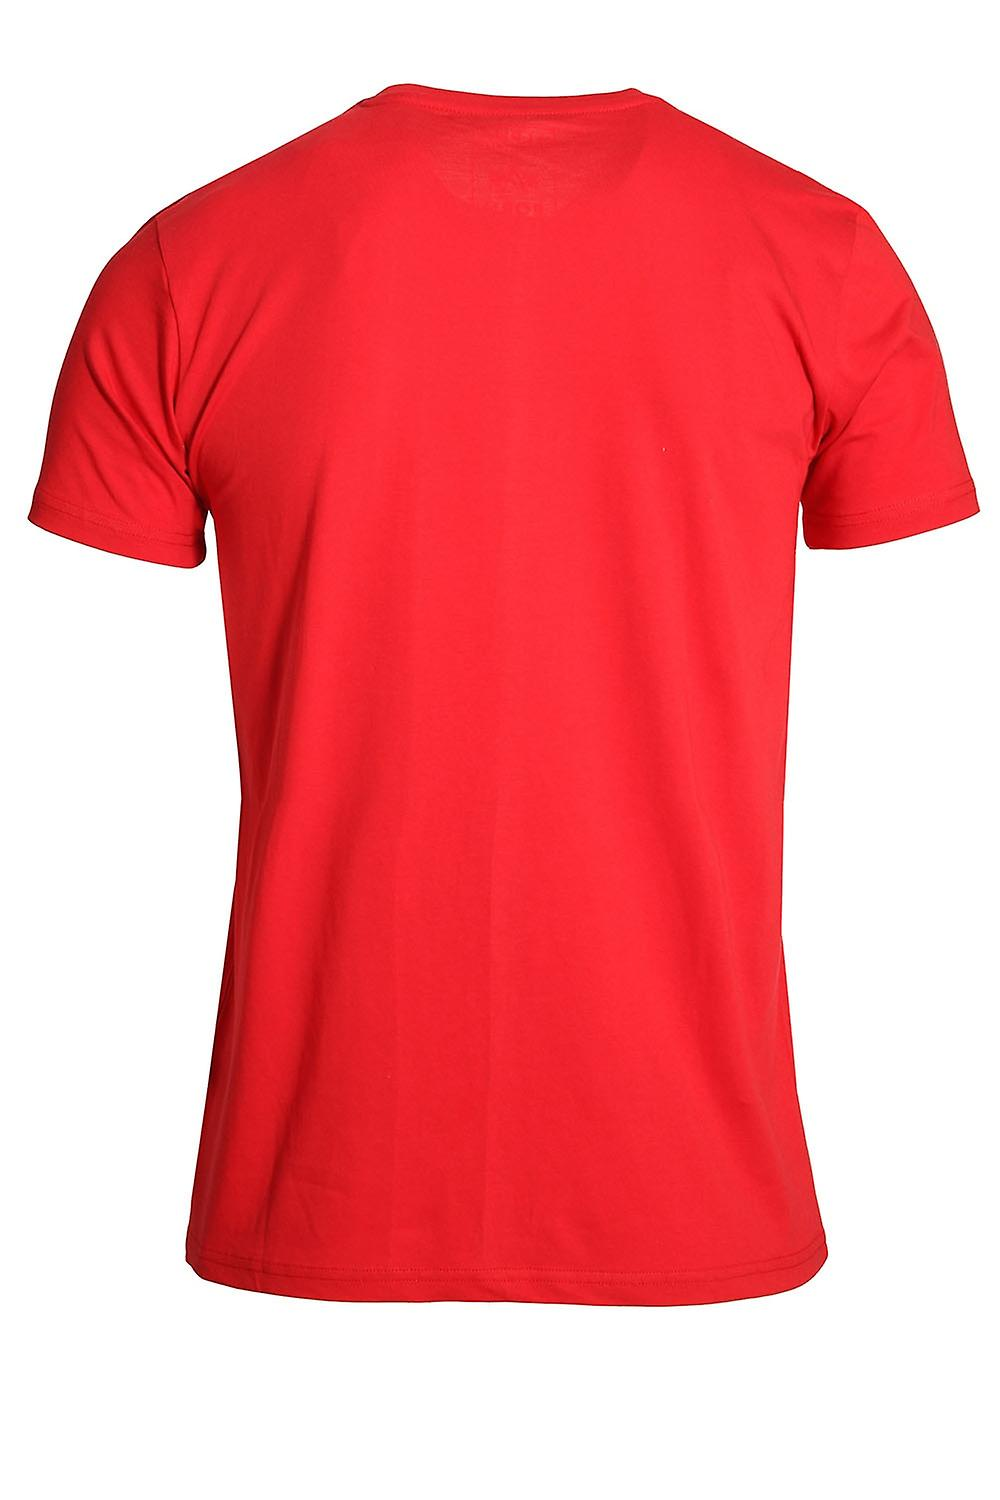 Soffe Men's Classic Cotton T-Shirt out of 5 stars customer reviews | 6 answered questions Price: $ - $ & Free Return on some sizes and colors Size: LargeColor: Red Verified Purchase. I bought this for my son to wear at a school function. No complaints. True to size. True to color. Liked the price range as well. Read more.4/5().